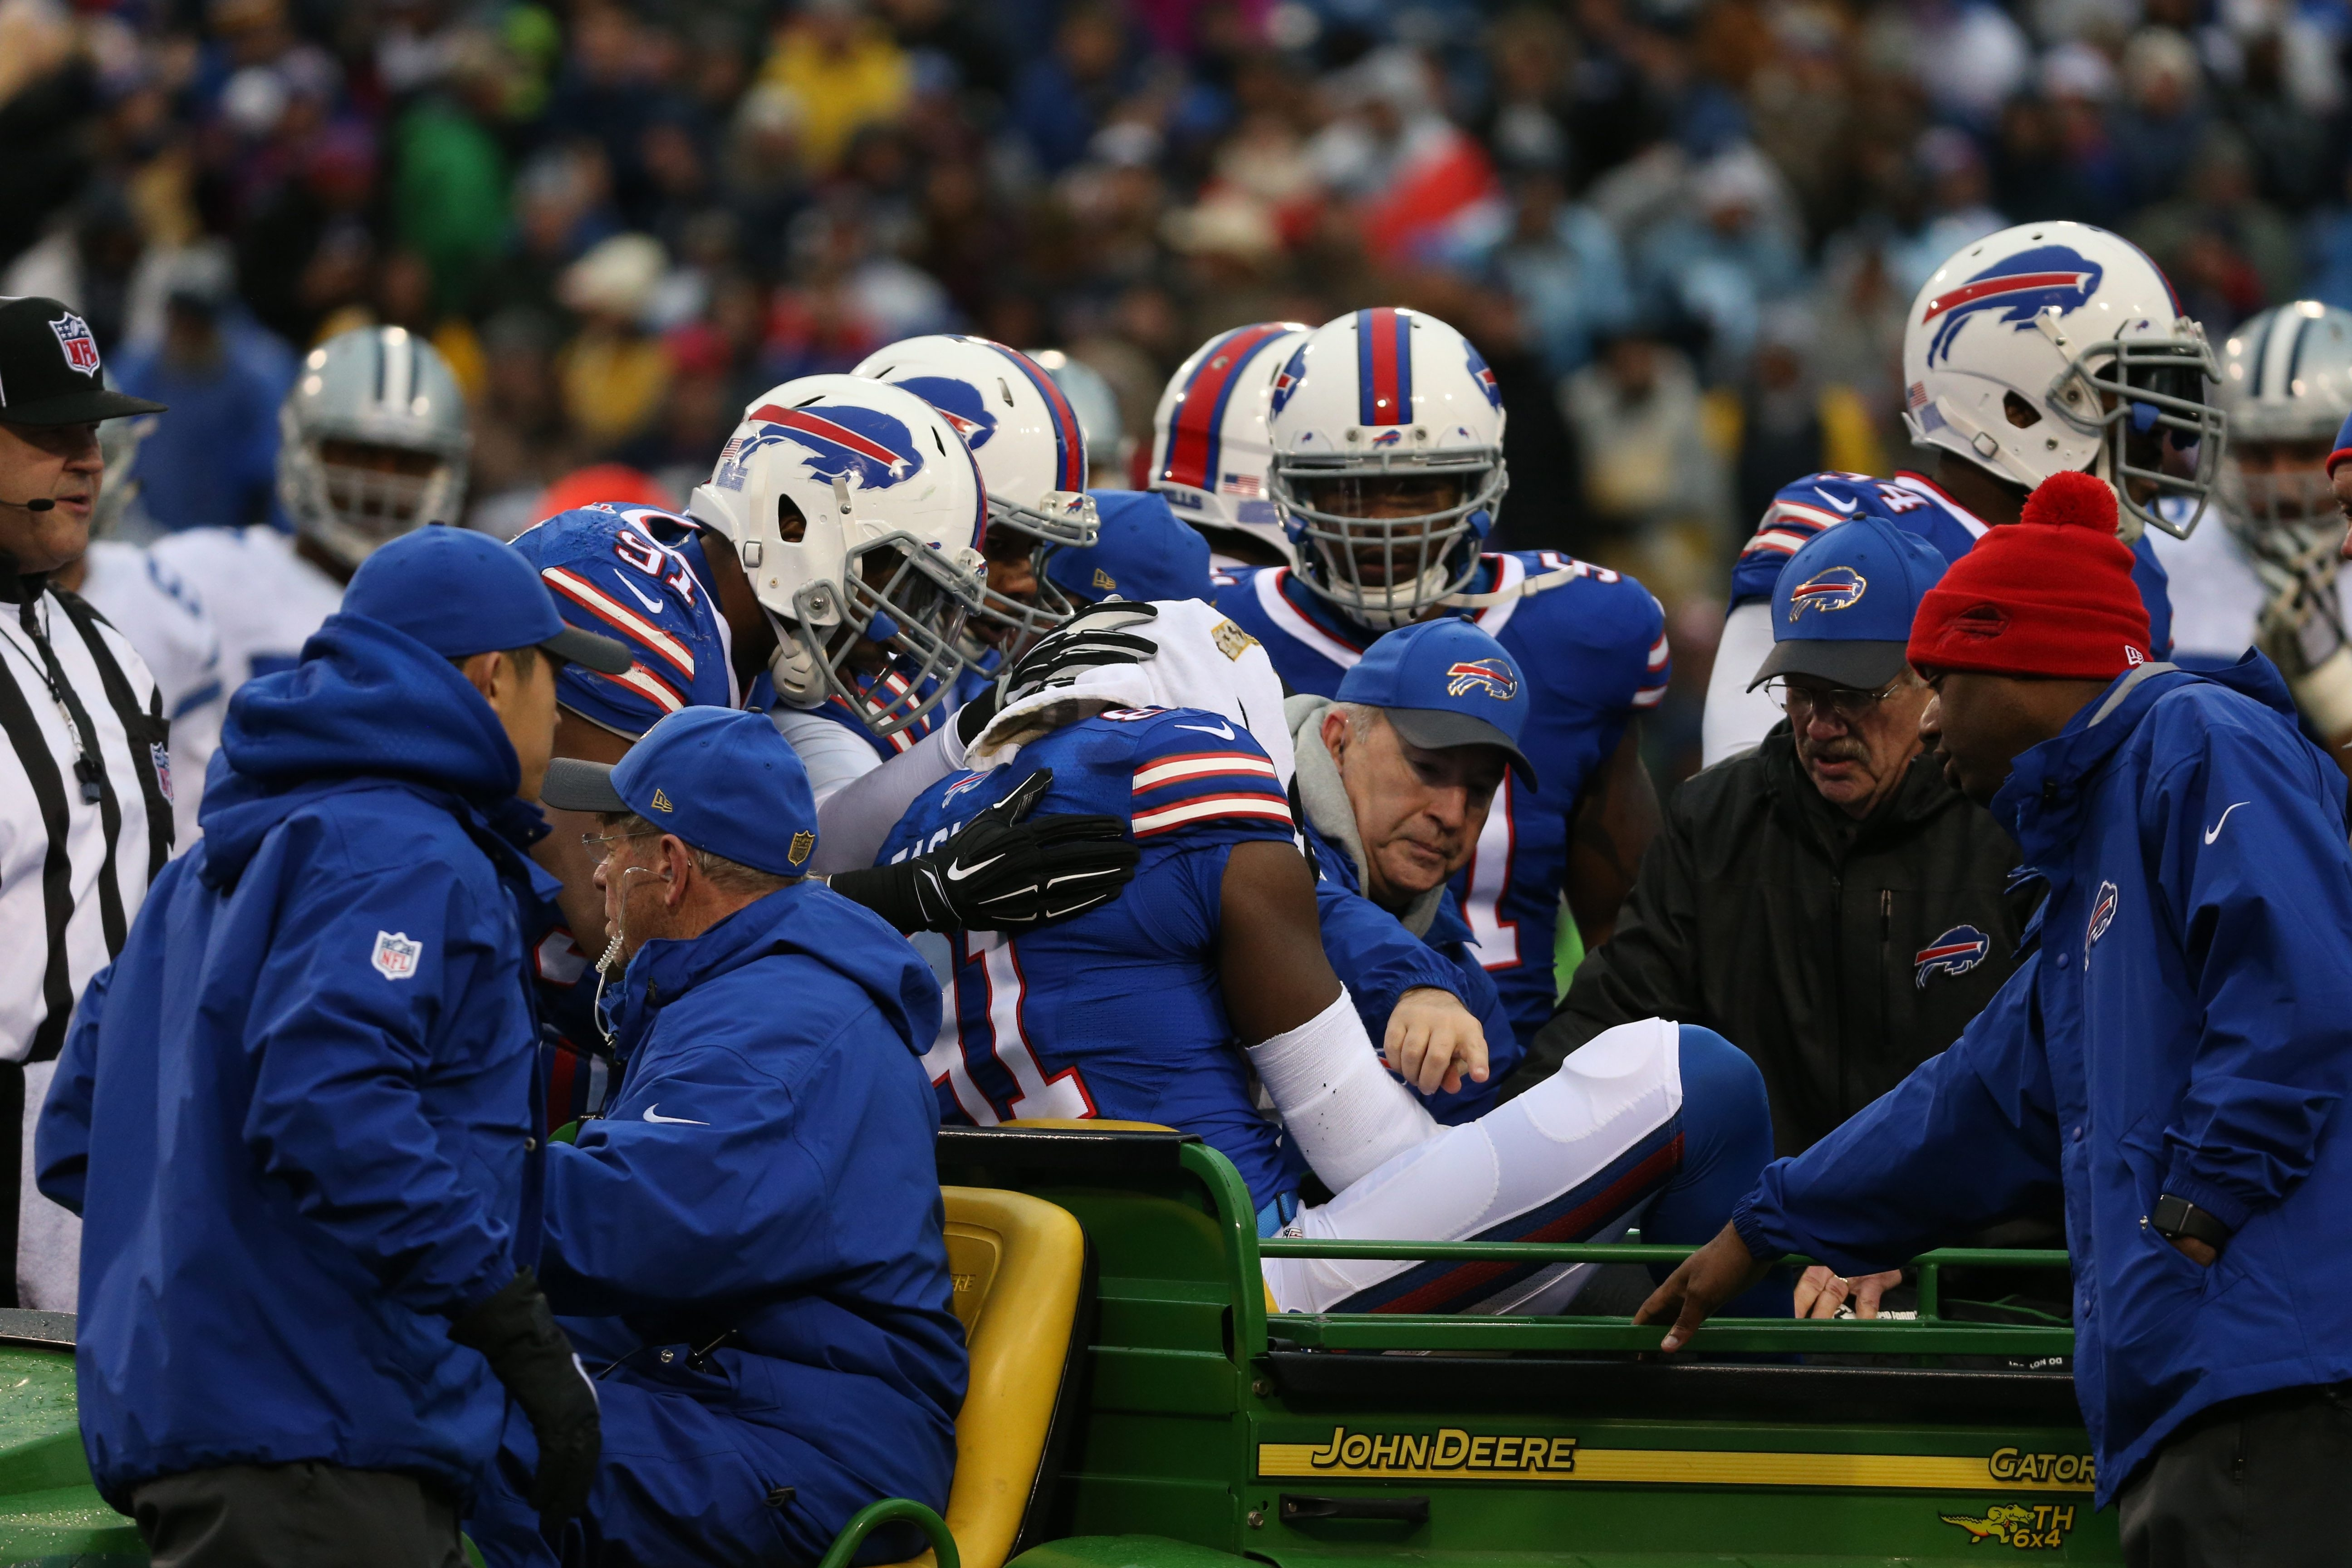 Bills wide receiver and special teams man Marcus Easley is carted off the field after suffering a serious knee injury in Sunday's game against Dallas.